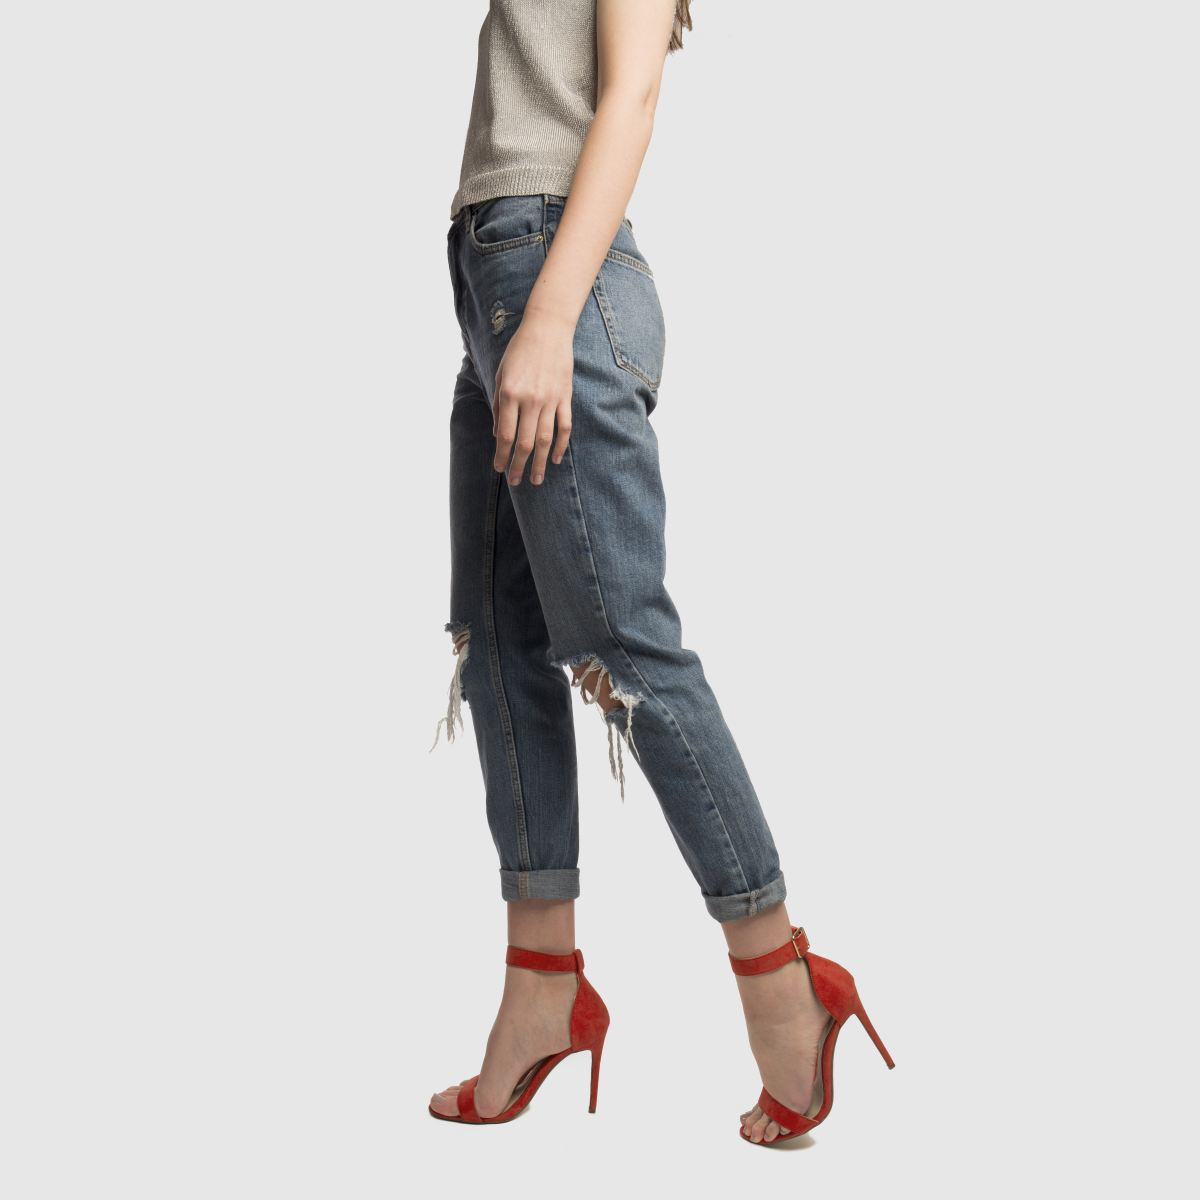 Damen Rot missguided Flat Strap Barely There Gute High Heels | schuh Gute There Qualität beliebte Schuhe 032125